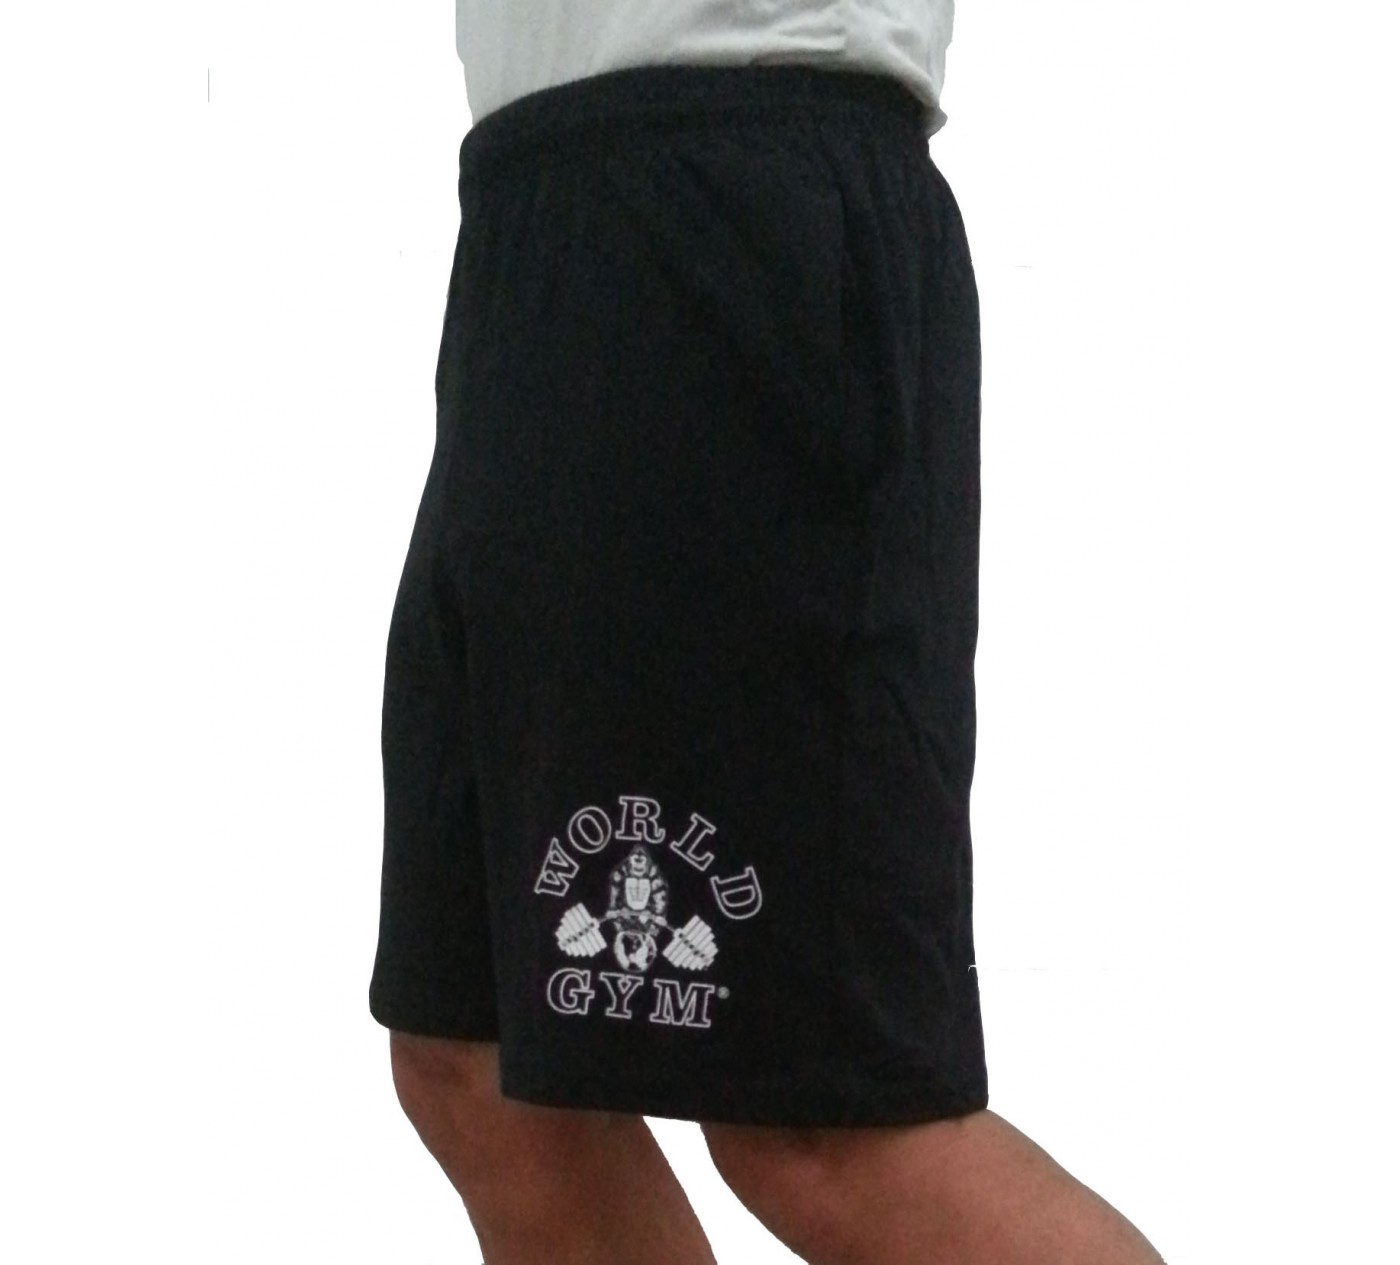 World Gym long shorts